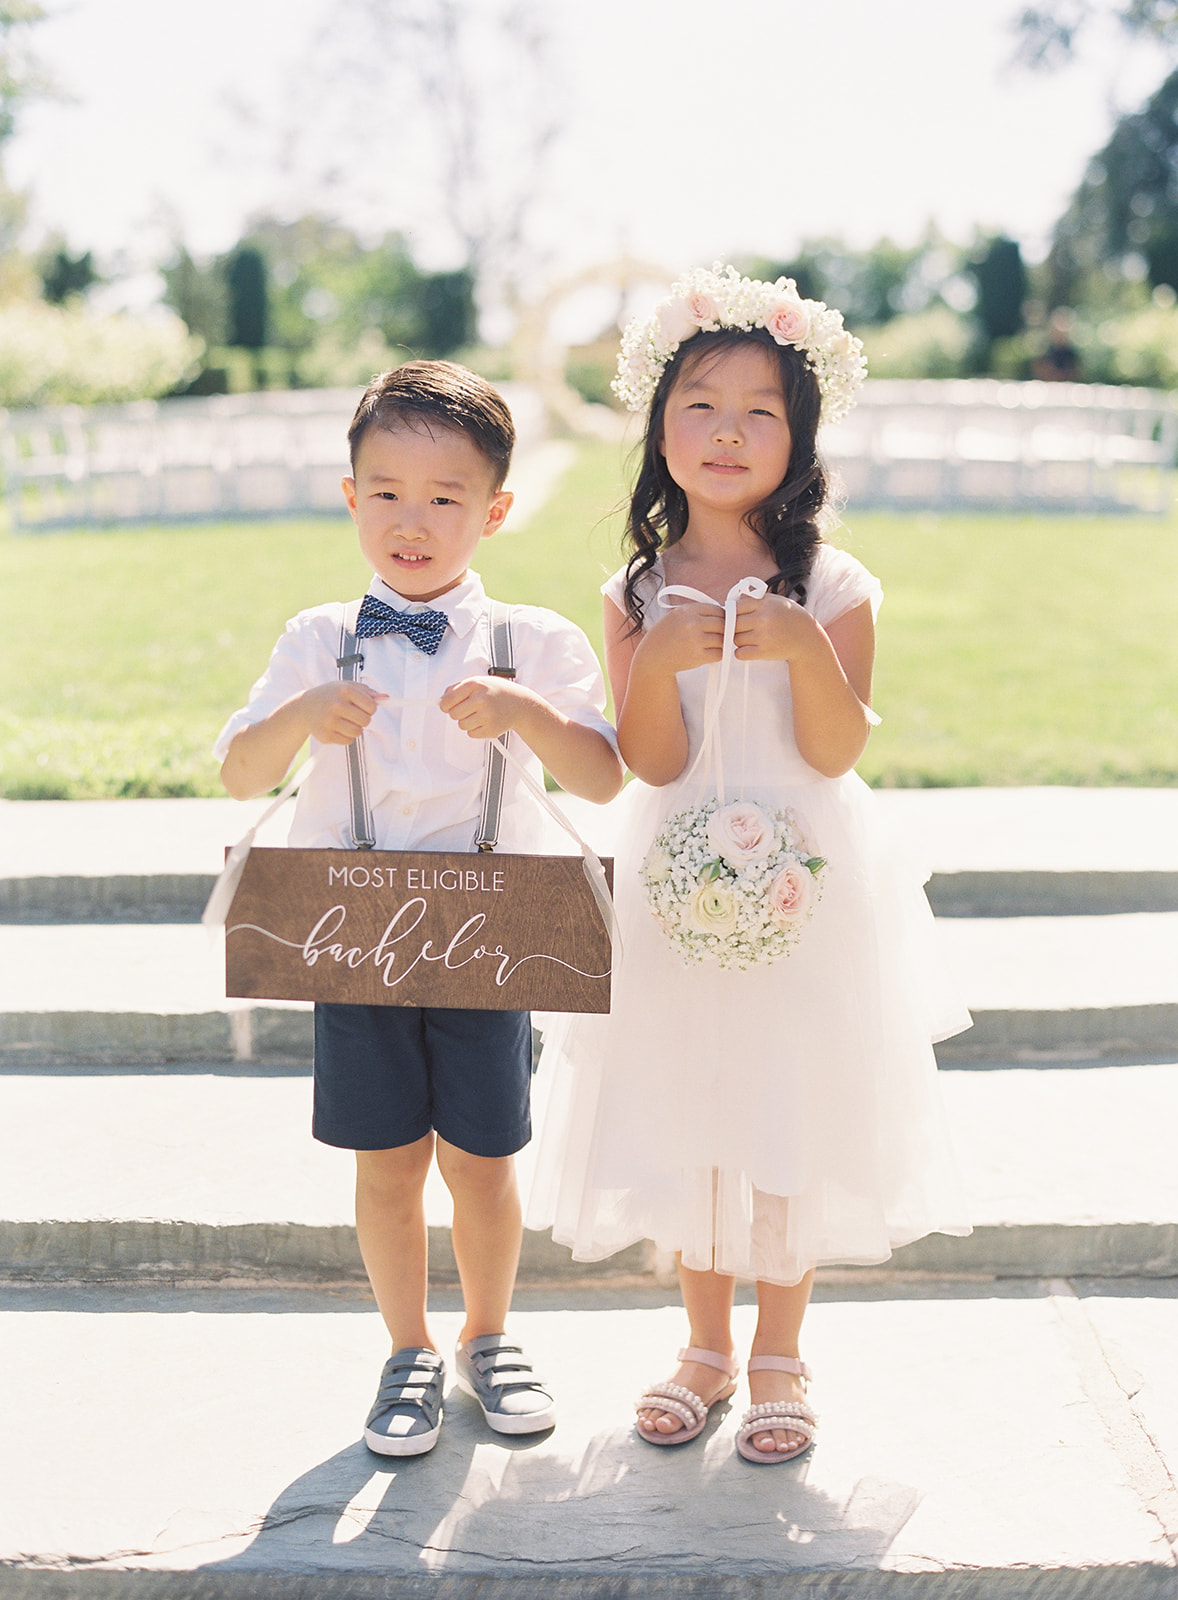 Ring bearer and flower girl standing side by side